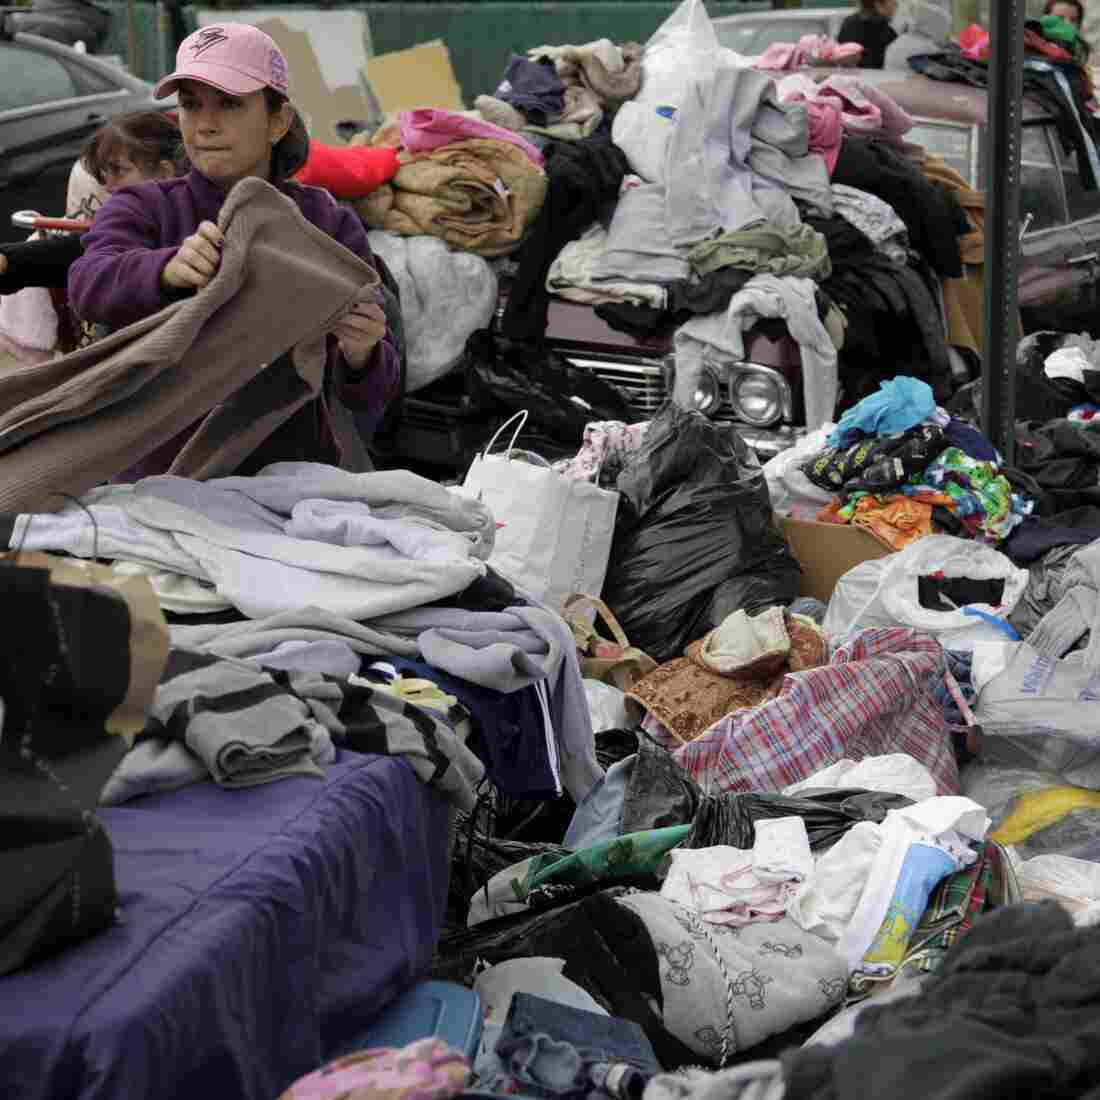 Volunteers sort through piles of donated clothes for Superstorm Sandy victims at an impromptu Staten Island aid station in November. Relief groups are still trying to figure out what to do with donated clothes people sent to New York and New Jersey in Sandy's aftermath.